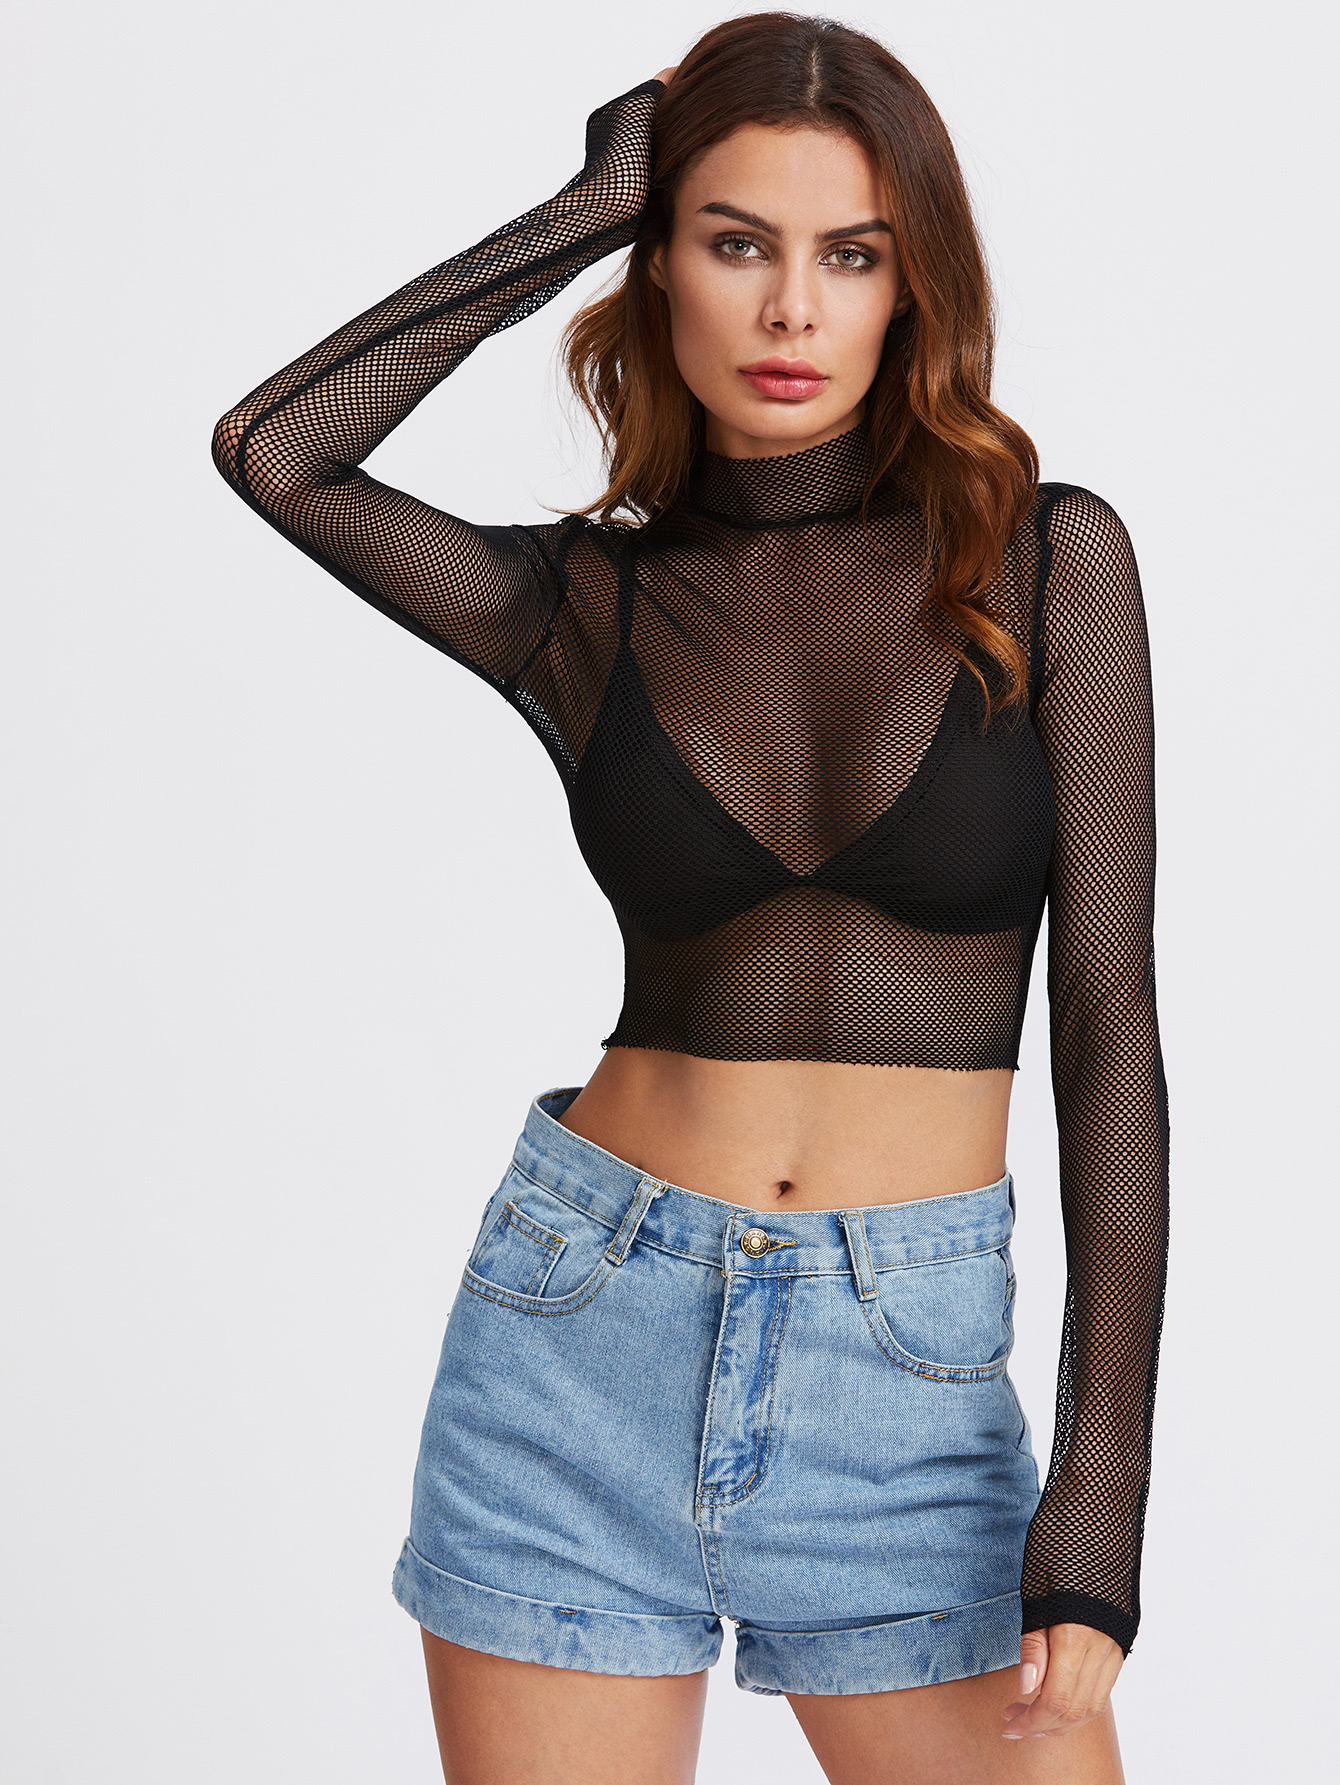 Eyelet Mesh Mock Neck Crop Top